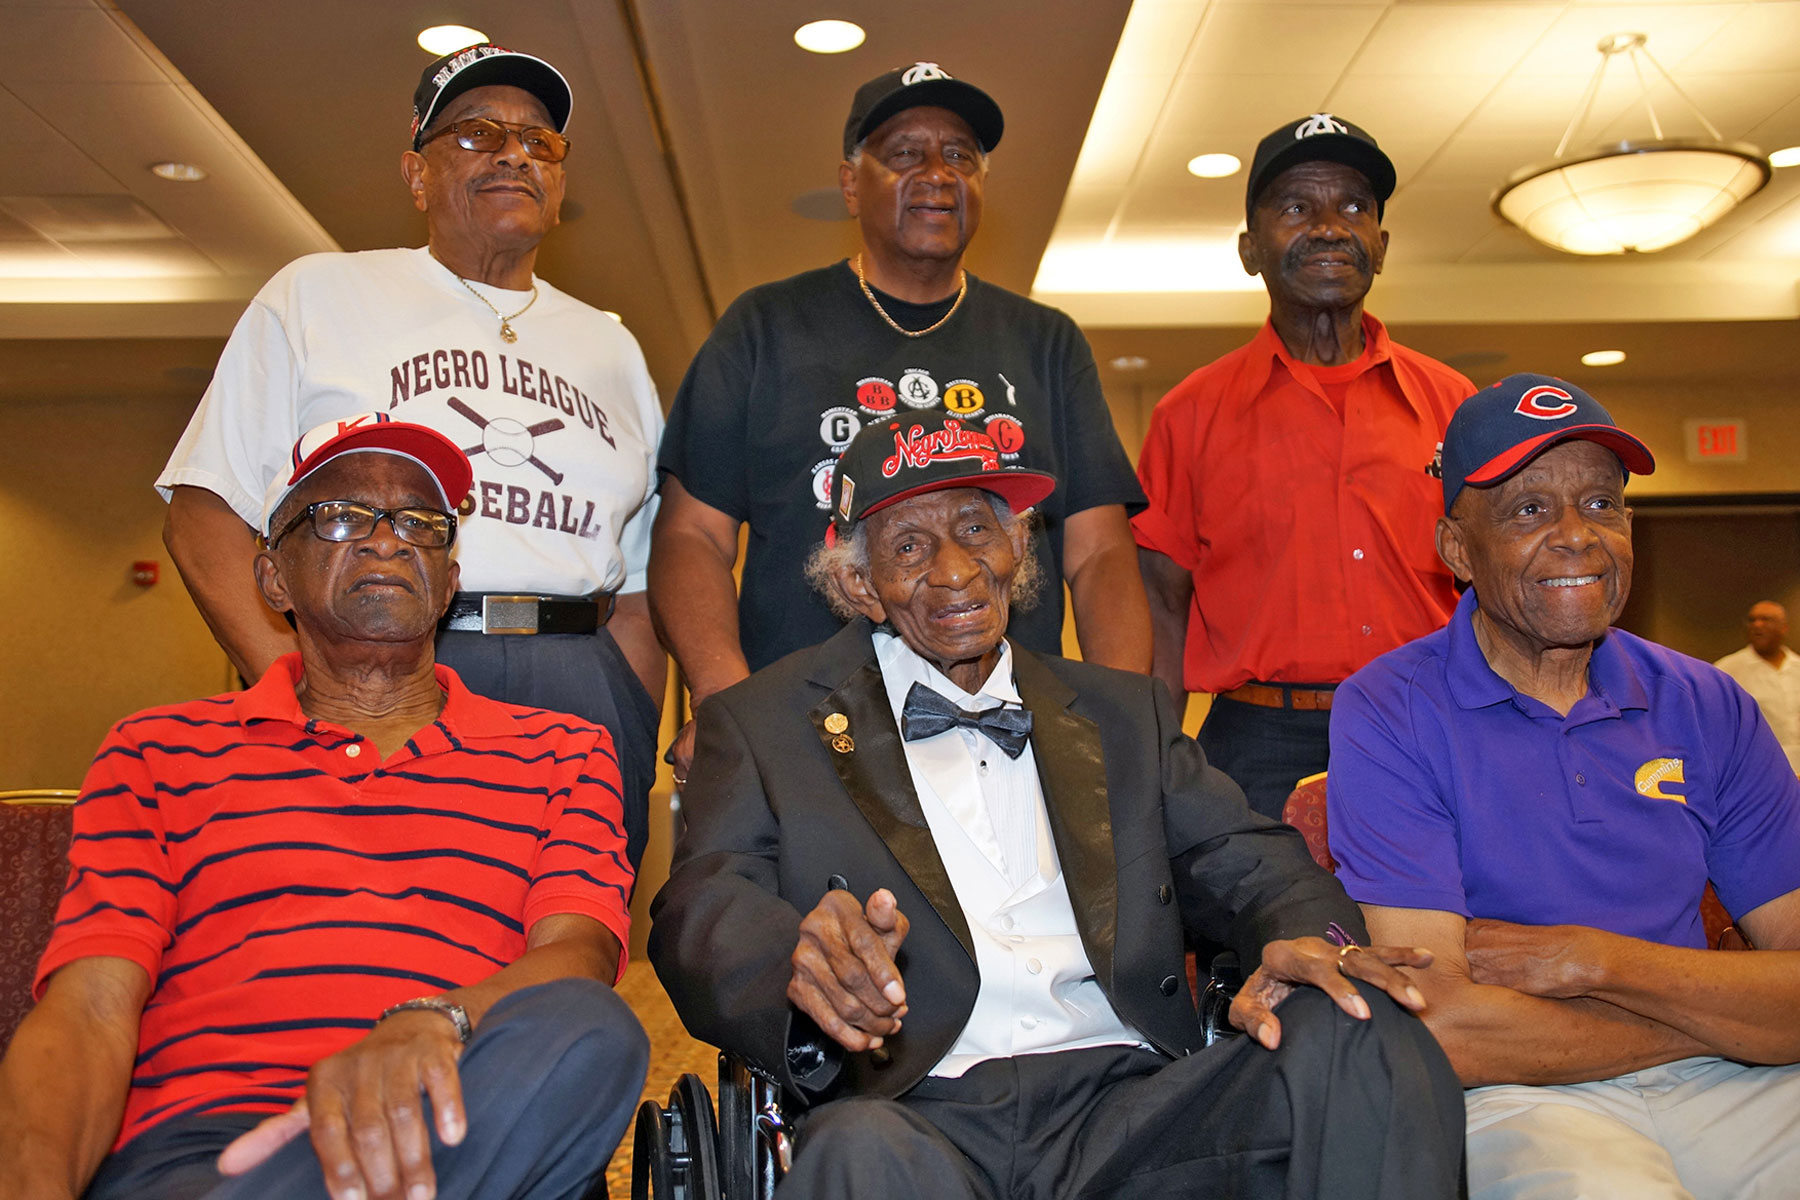 the historical significance of segregated baseball the milwaukee after the milwaukee brewers honored negro baseball league players during a special tribute game at the miller park stadium on 25 the negro league